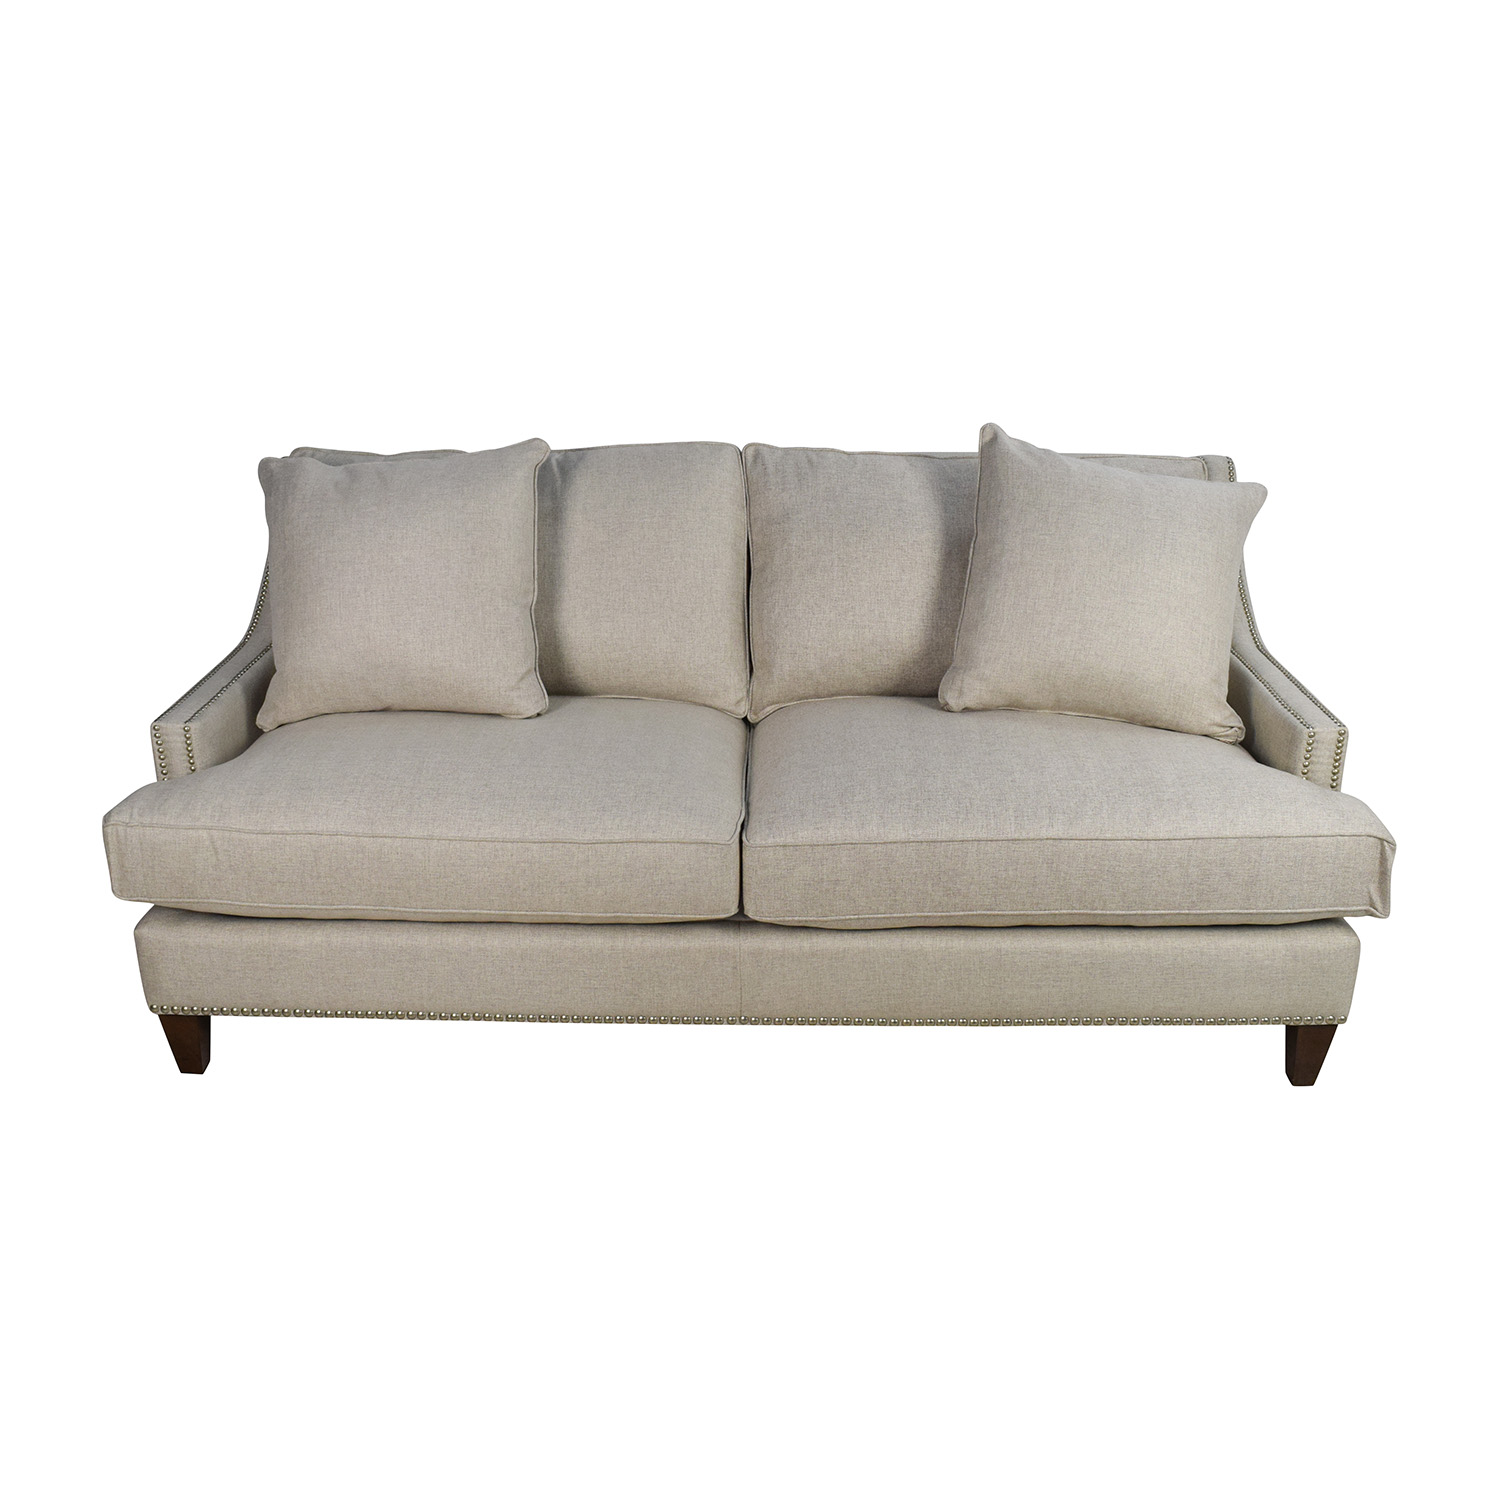 buy Jennifer Convertibles Duchess Beige Sofa Jennifer Convertibles Sofas